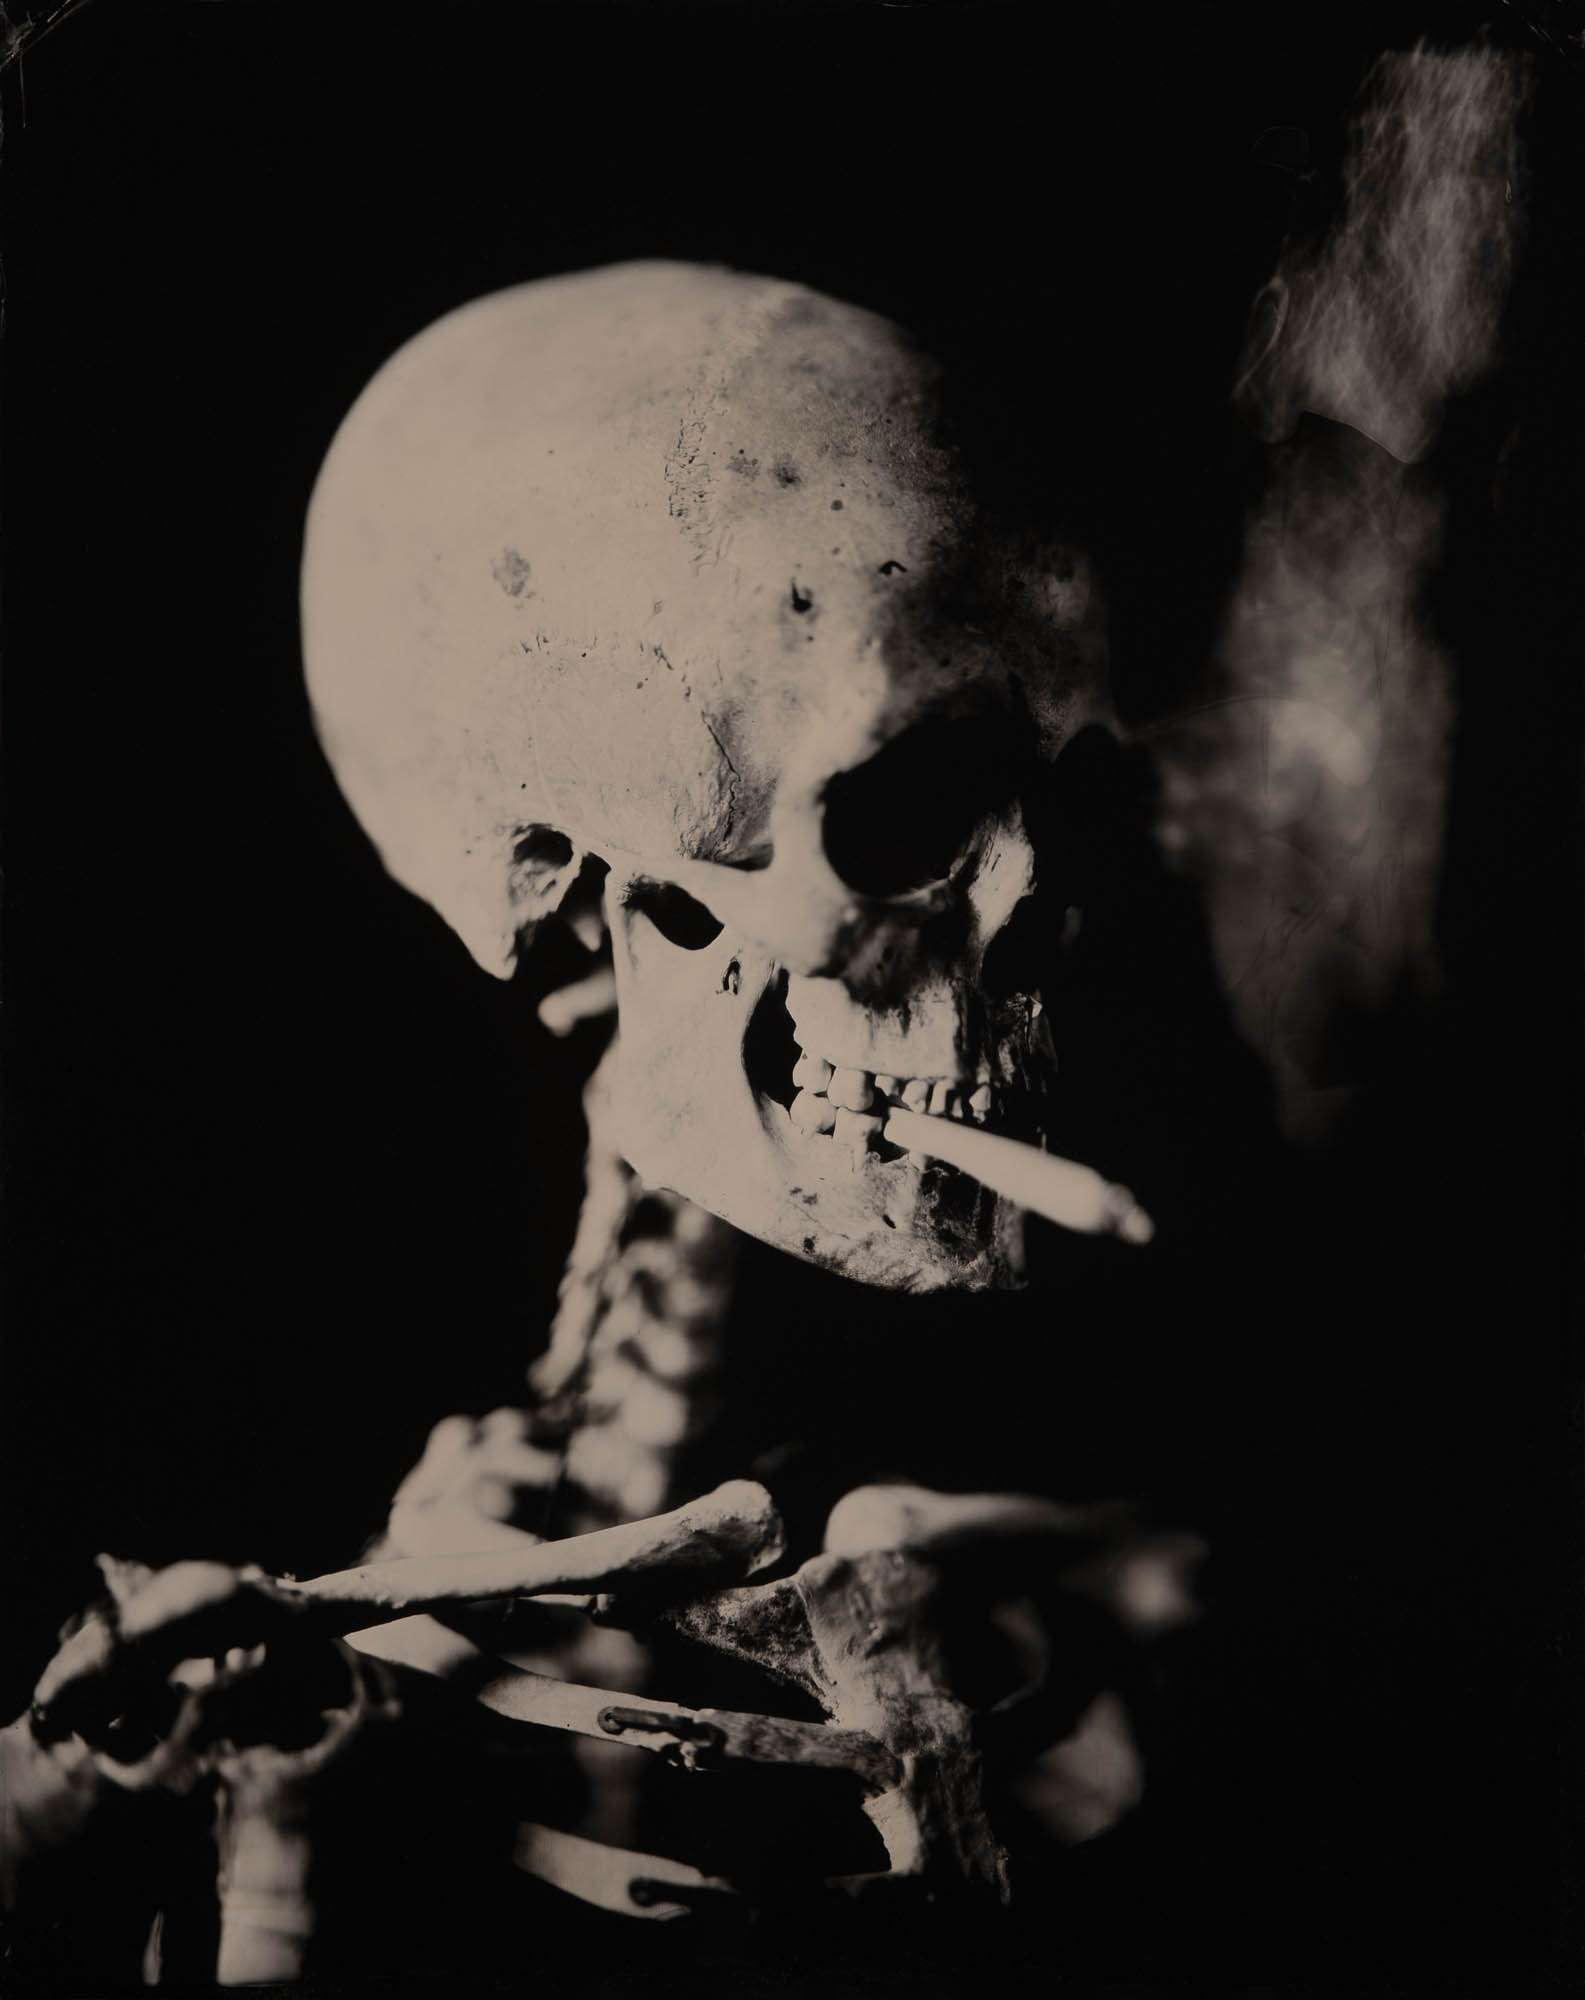 Head of a Skeleton with a Burning Cigarette, 2019